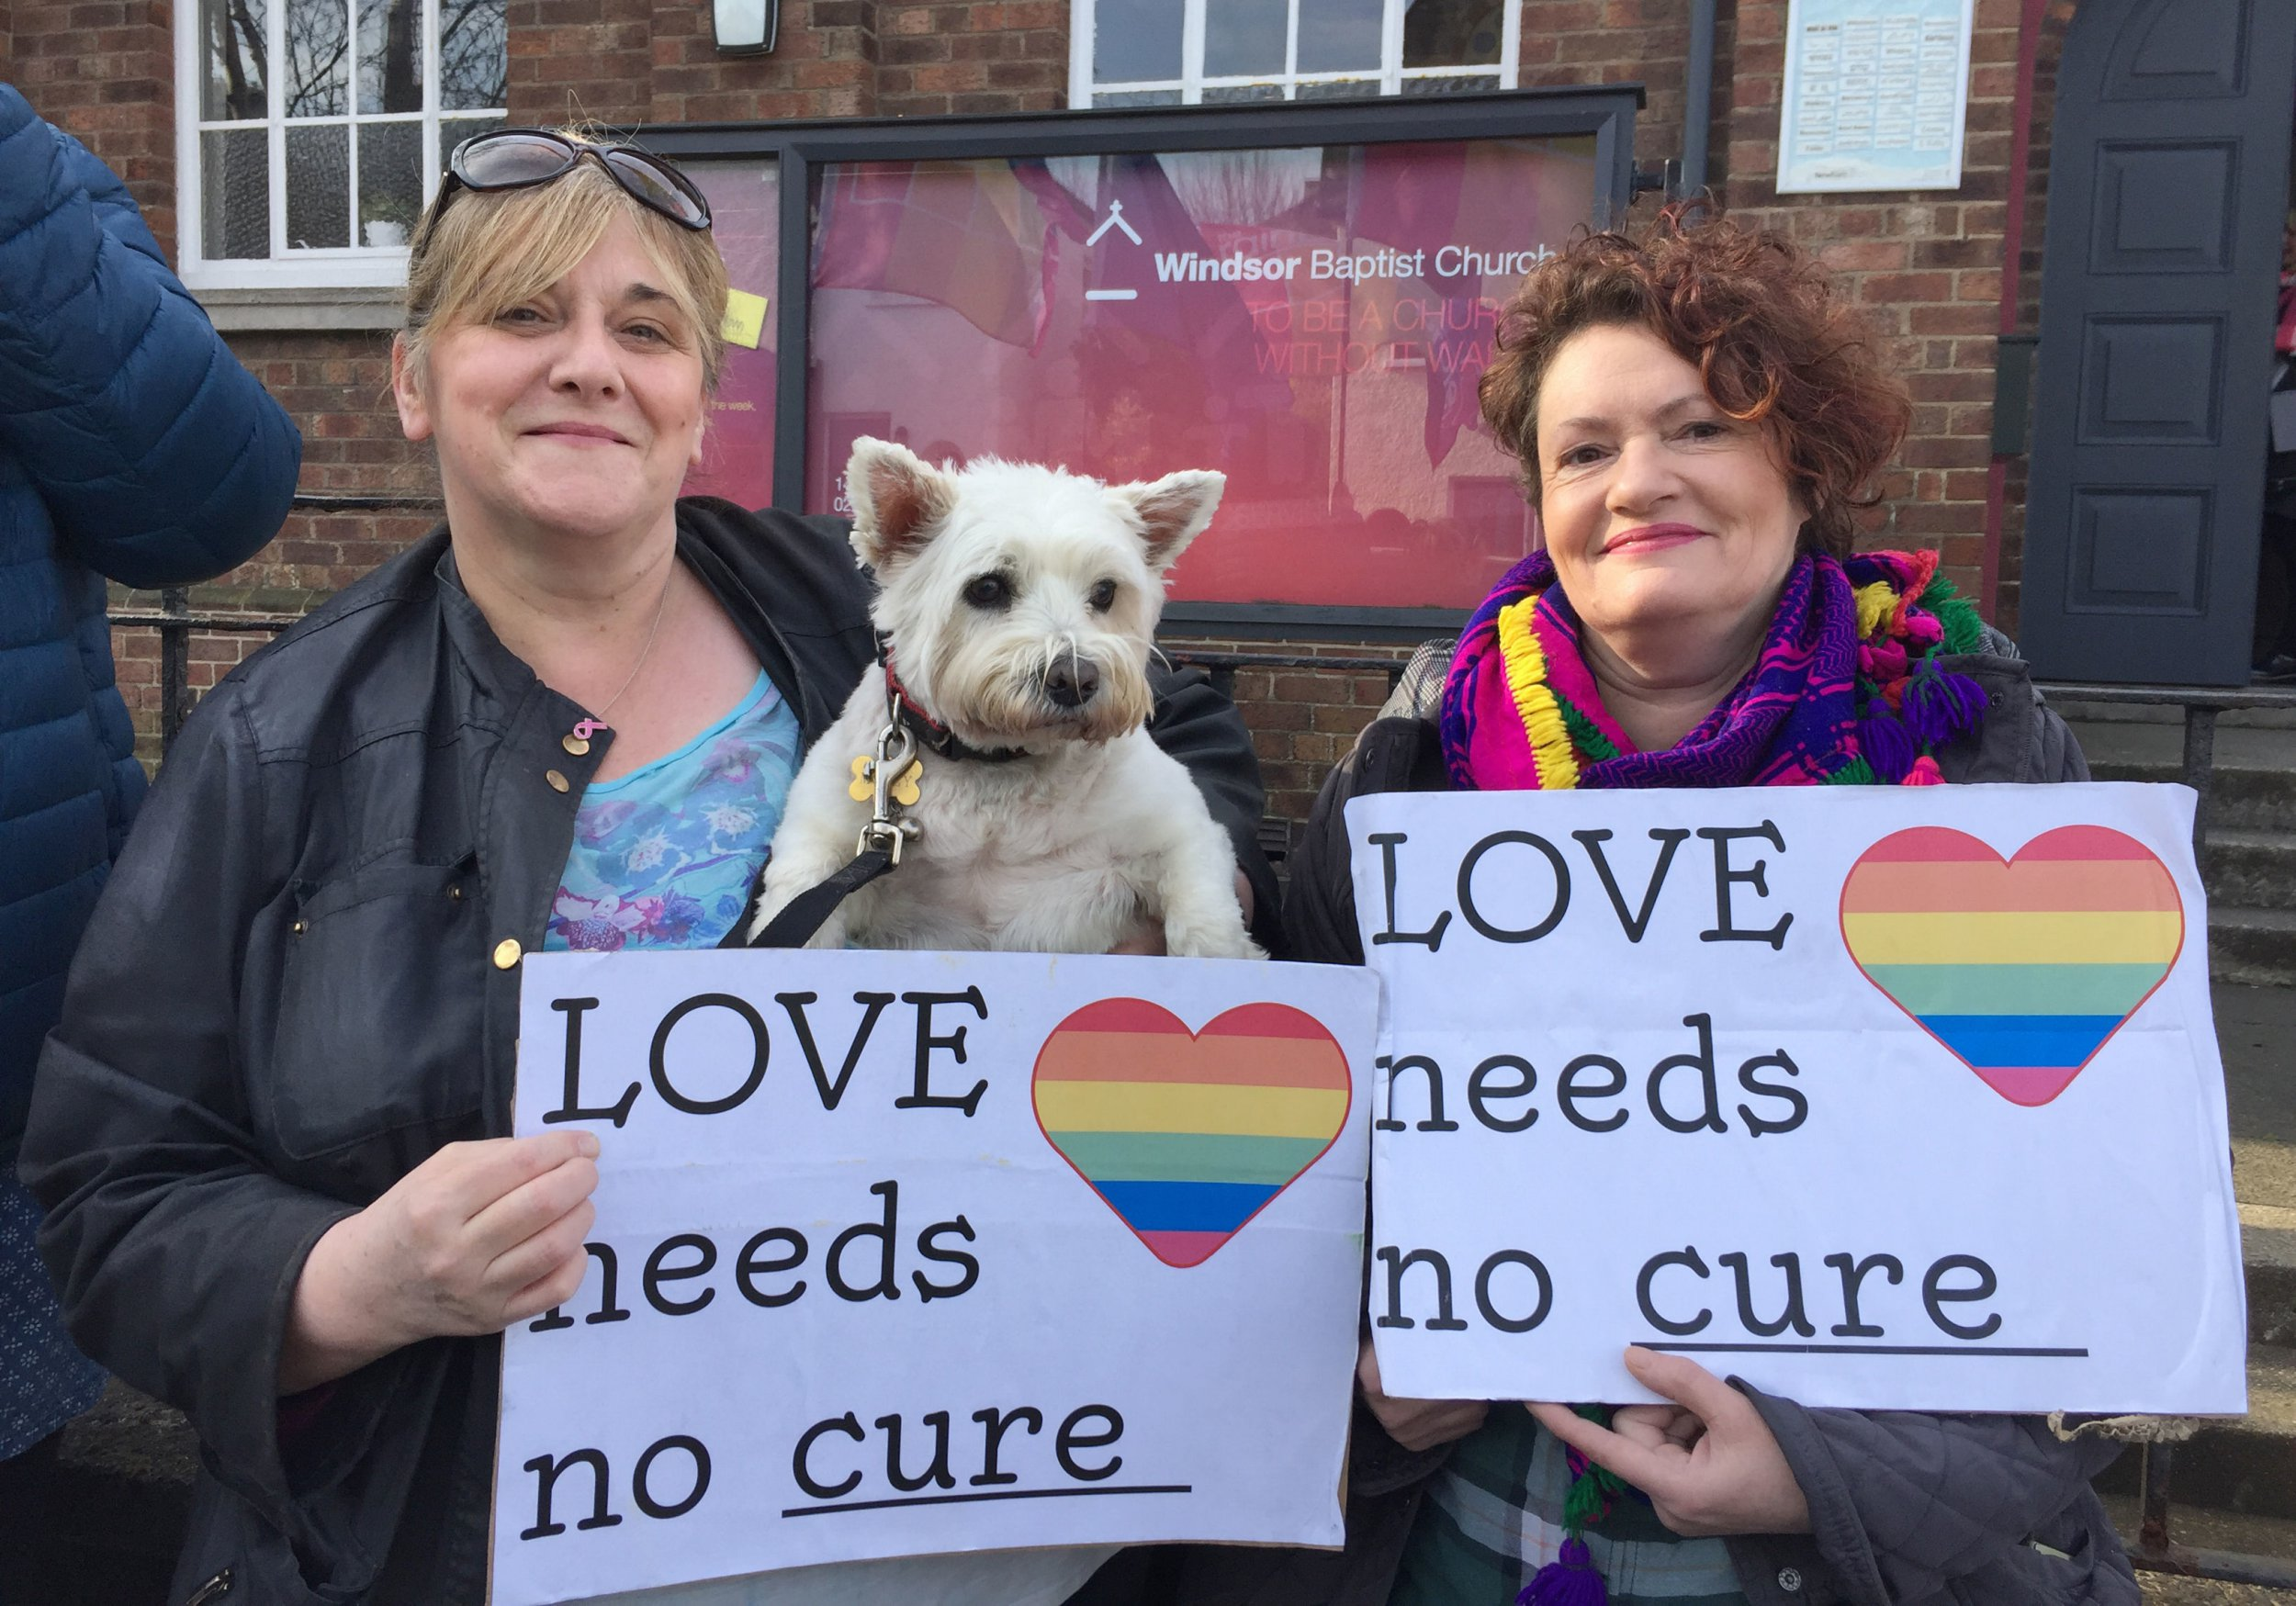 """Shirley McPherson (left) with her dog Molly and Helen Crickard joins campaigners for LGBT rights holding a protest outside Windsor Baptist Church in Belfast where a Christian conference is being held offering support for people experiencing """"same sex temptations"""" organised by the True Freedom Trust. PRESS ASSOCIATION Photo. Picture date: Saturday April 6, 2019. Demonstrators held the peaceful picket outside the church, branding the conference a form of gay conversion therapy. See PA story ULSTER Protest. Photo credit should read: David Young/PA Wire"""